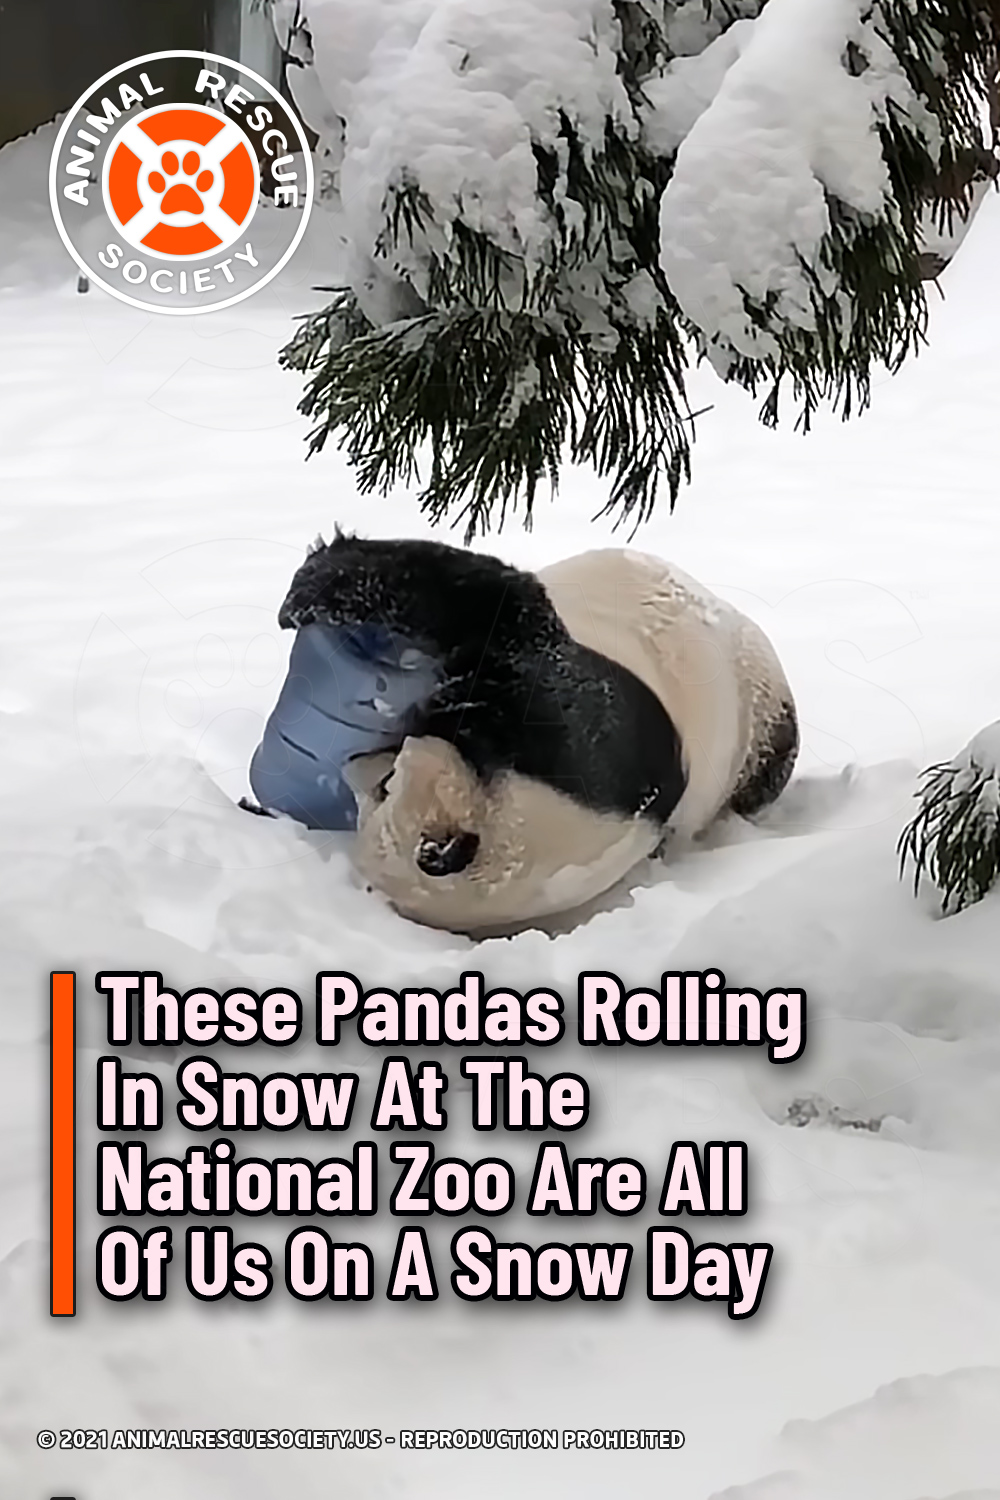 These Pandas Rolling In Snow At The National Zoo Are All Of Us On A Snow Day